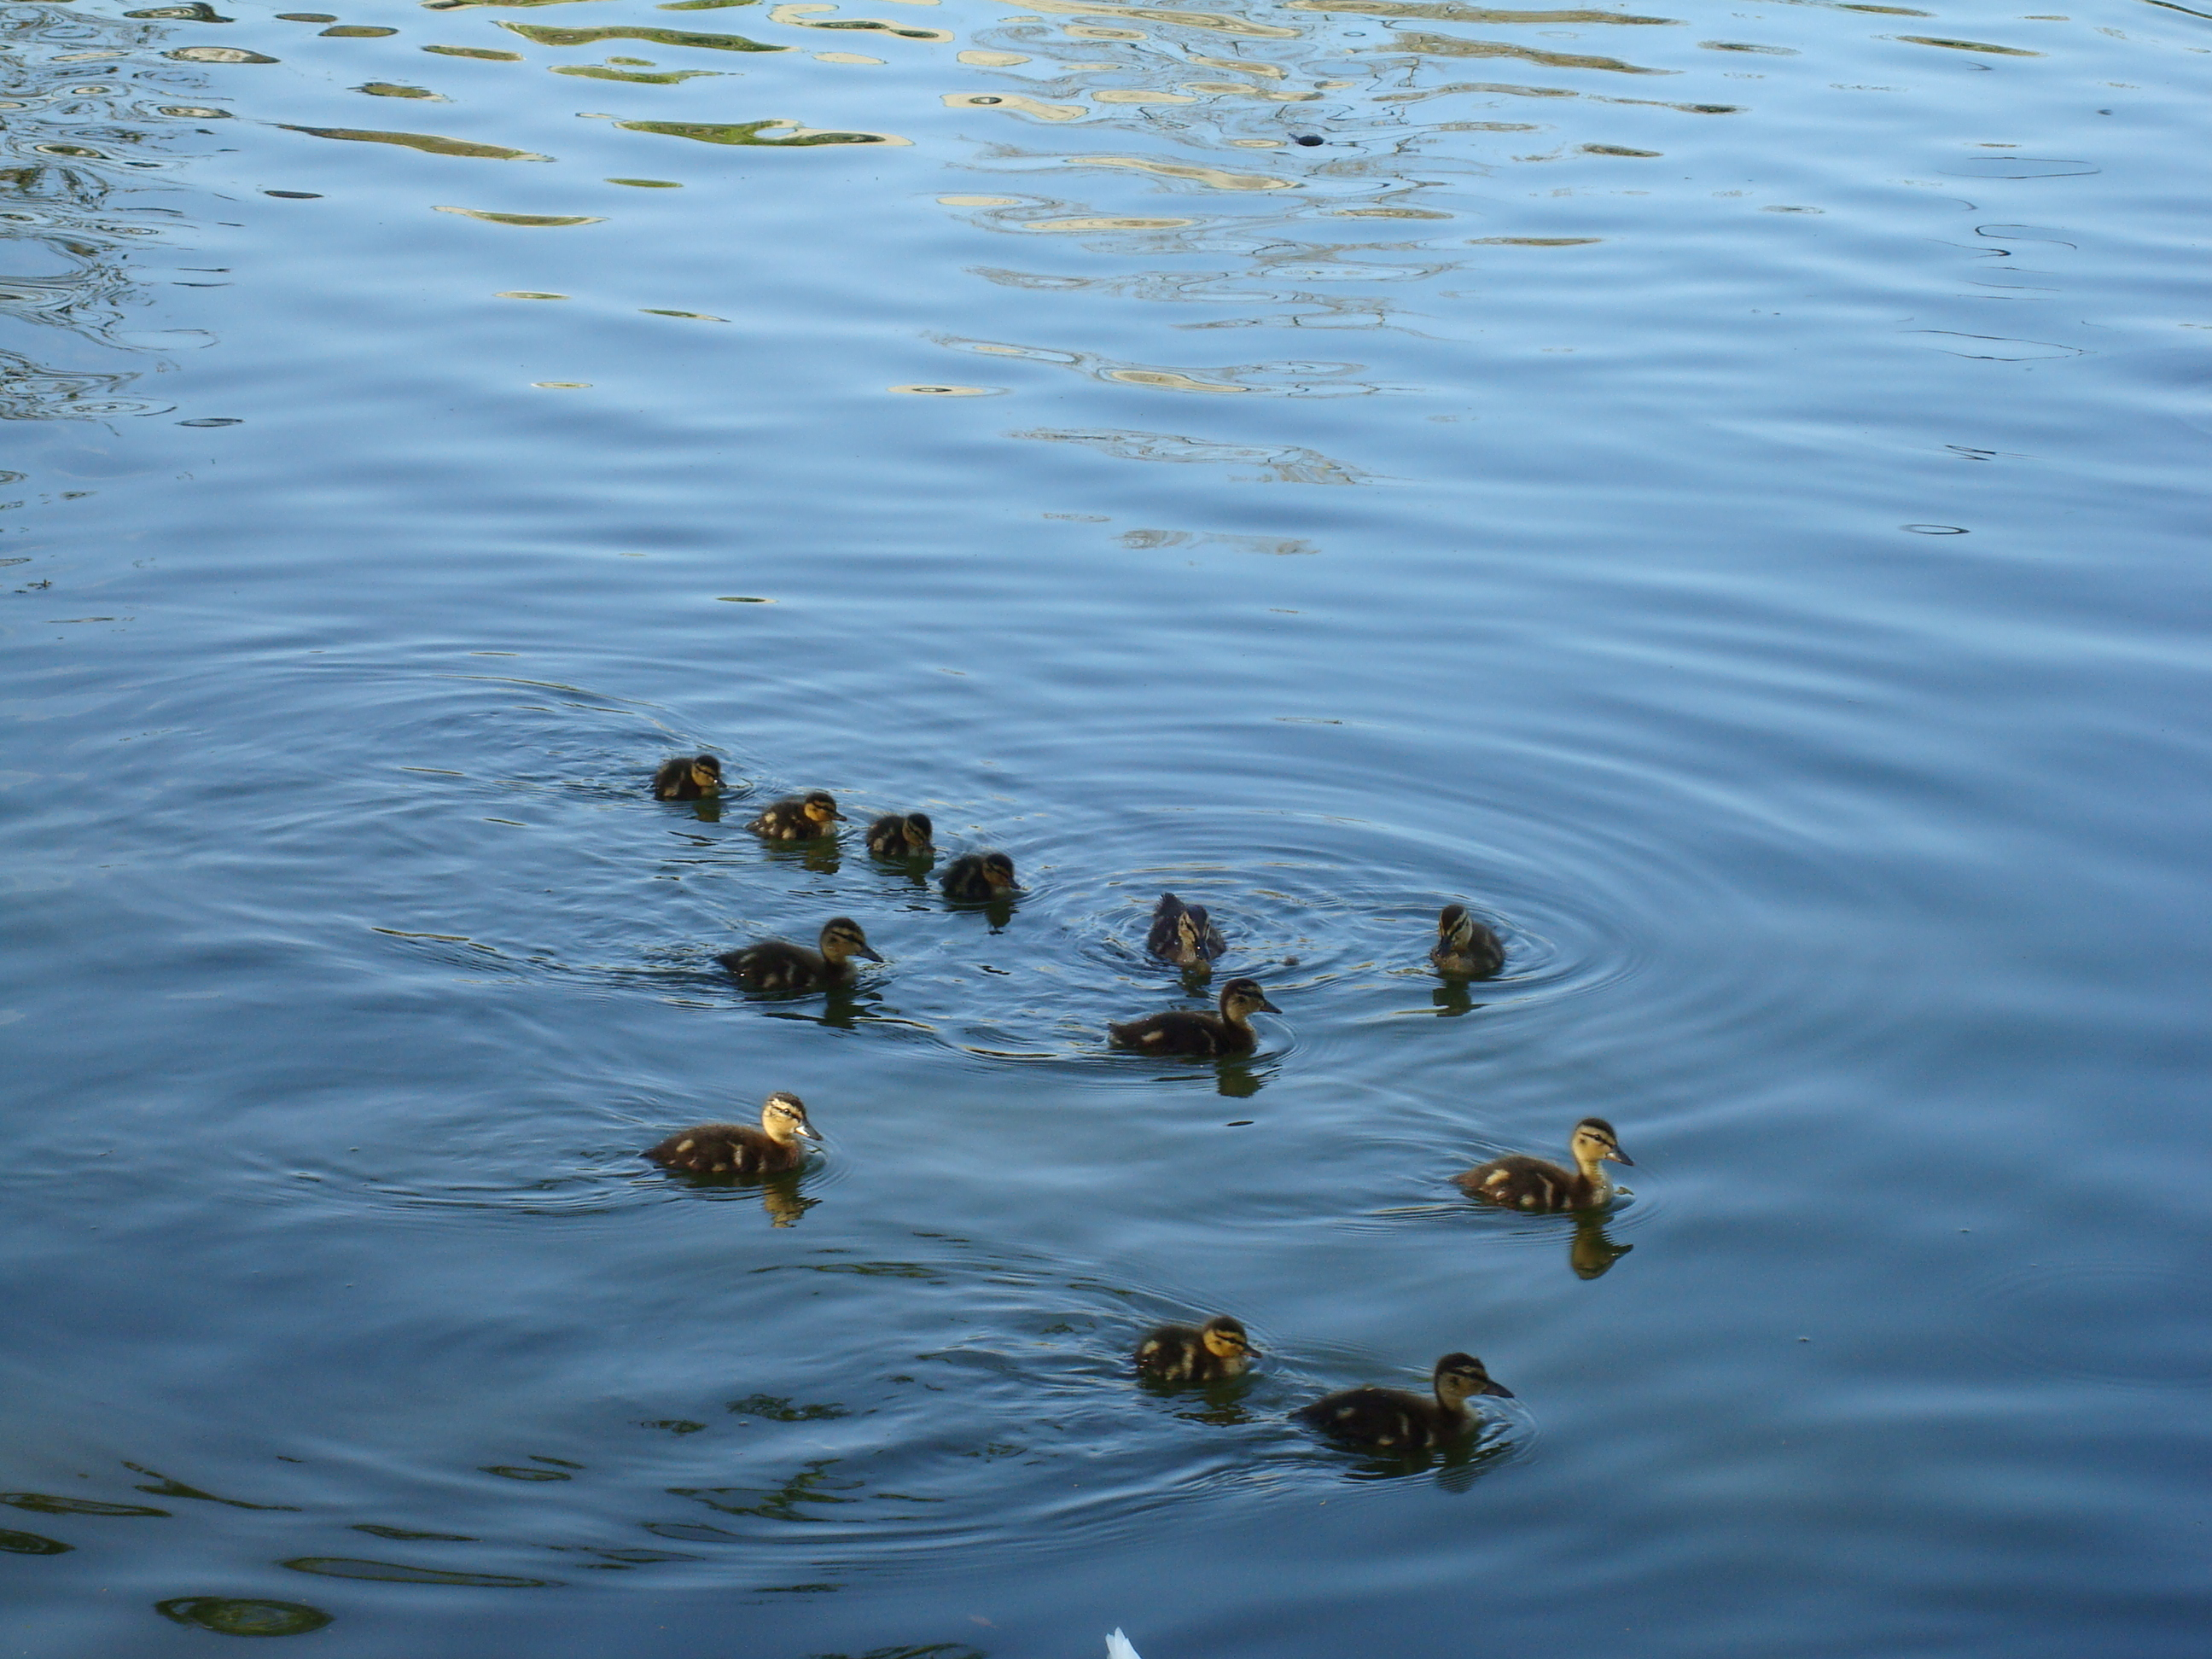 Attention:  photo of cute ducklings! Spring has sprung!